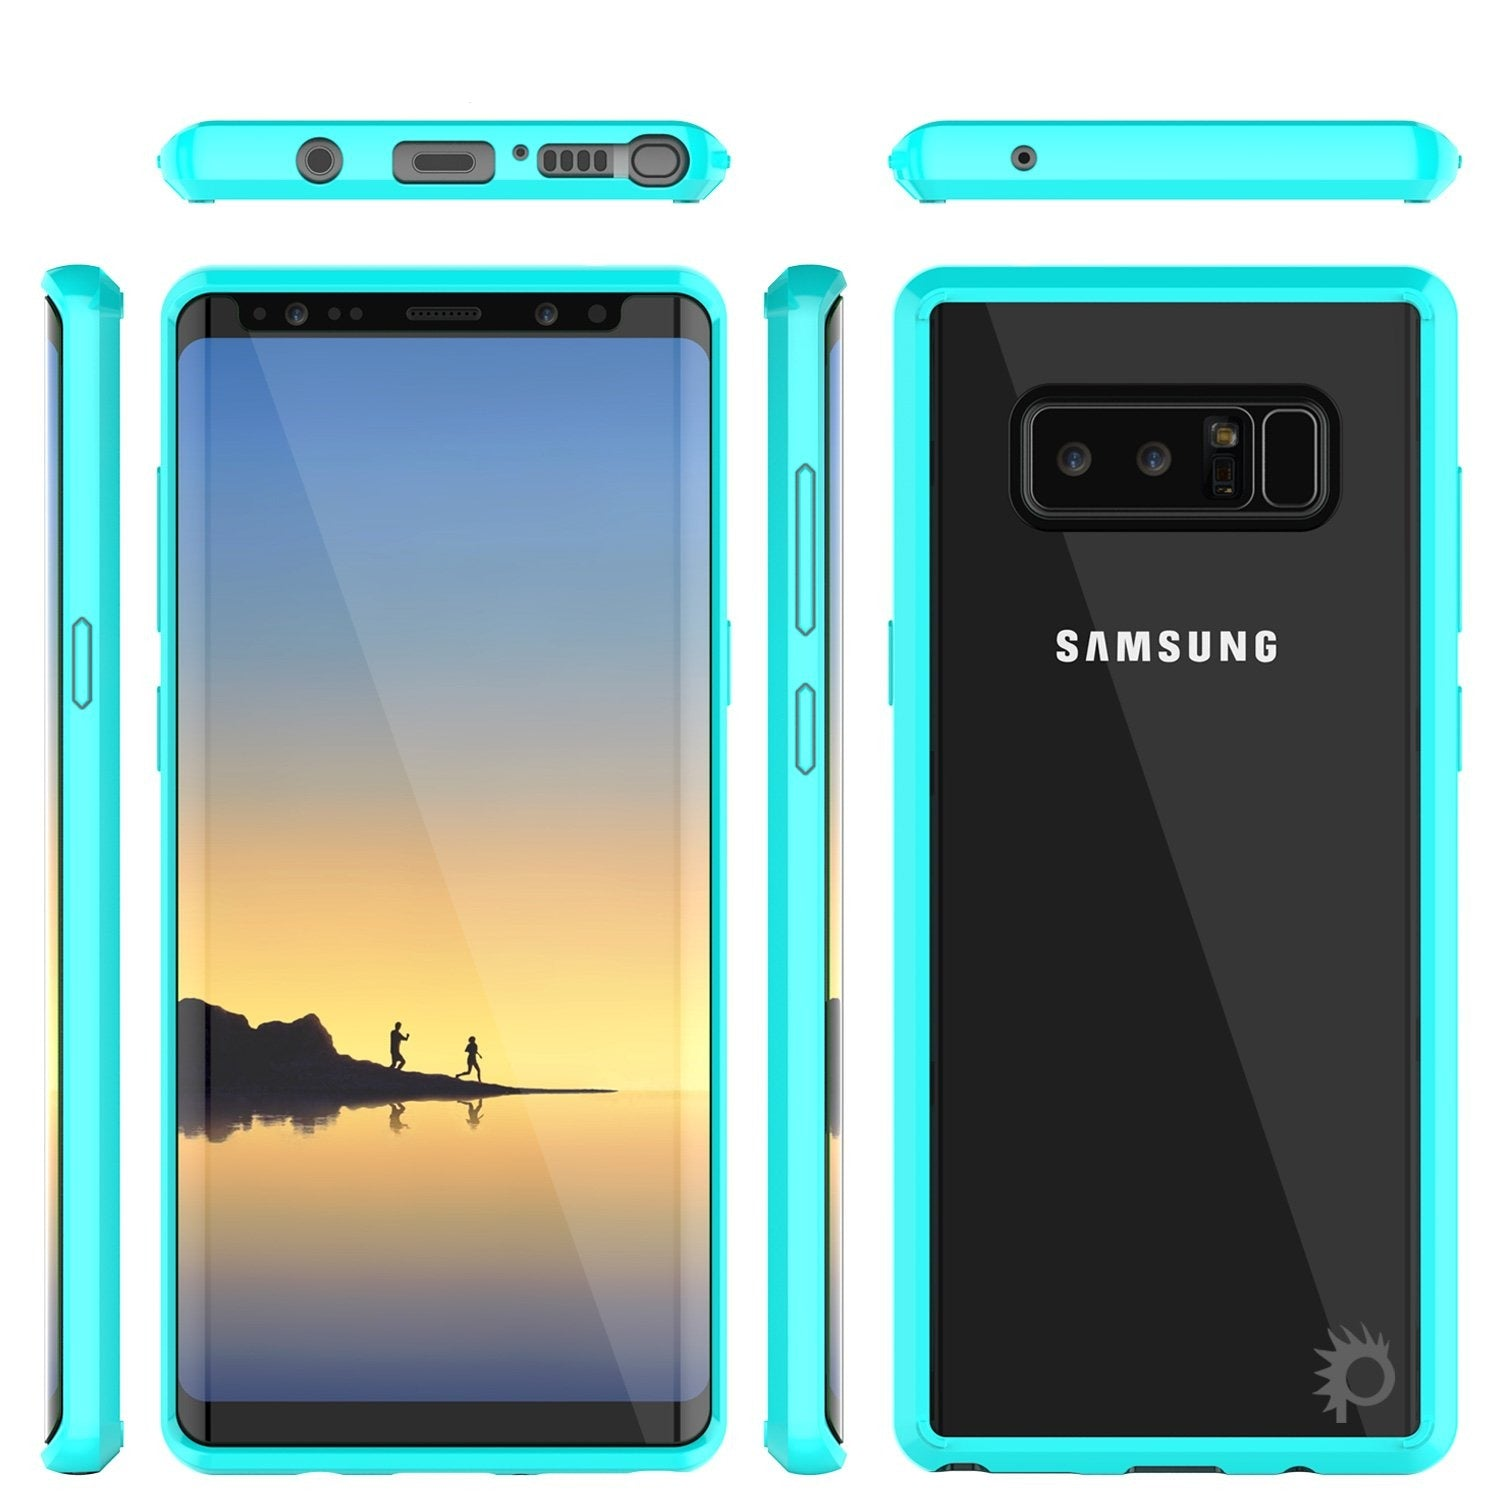 Galaxy Note 8 Screen Protector W/ Anti-Shock Proof Slim Case [Teal]